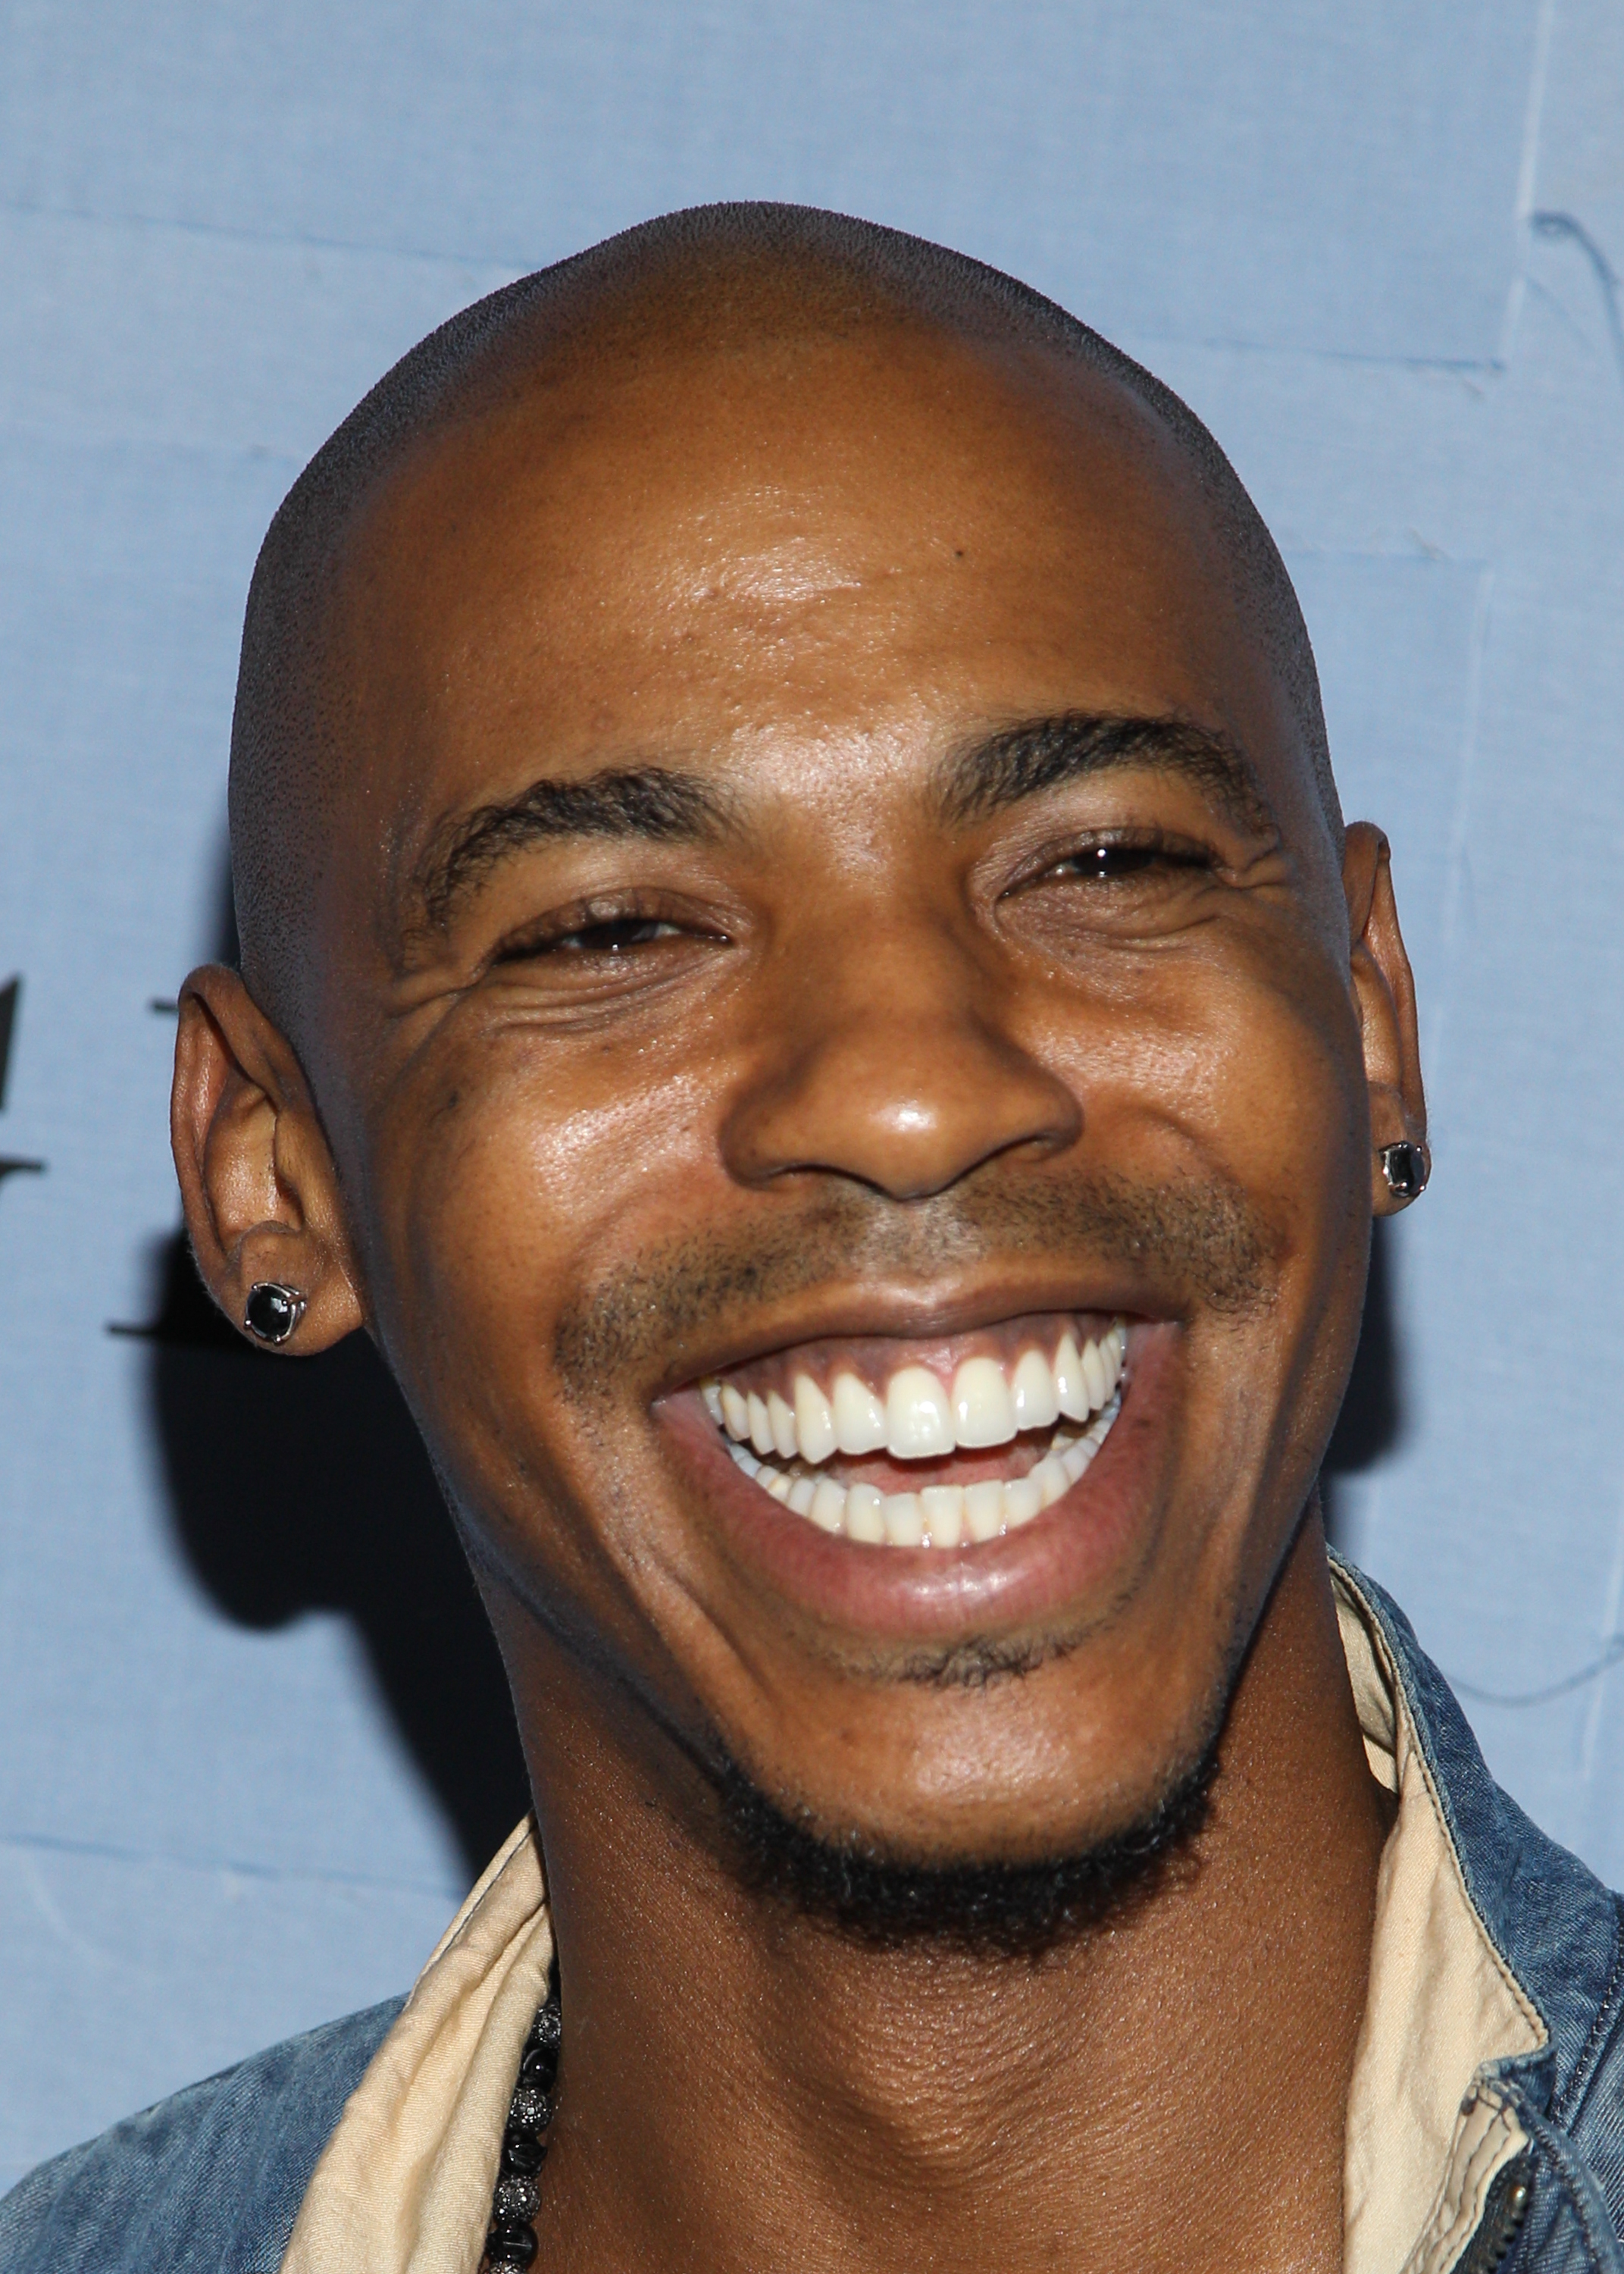 Actor Mehcad Brooks arrives at the 2013 People StyleWatch Denim Party at the Palihouse on Thursday, Sept. 19, 2013 in Los Angeles.